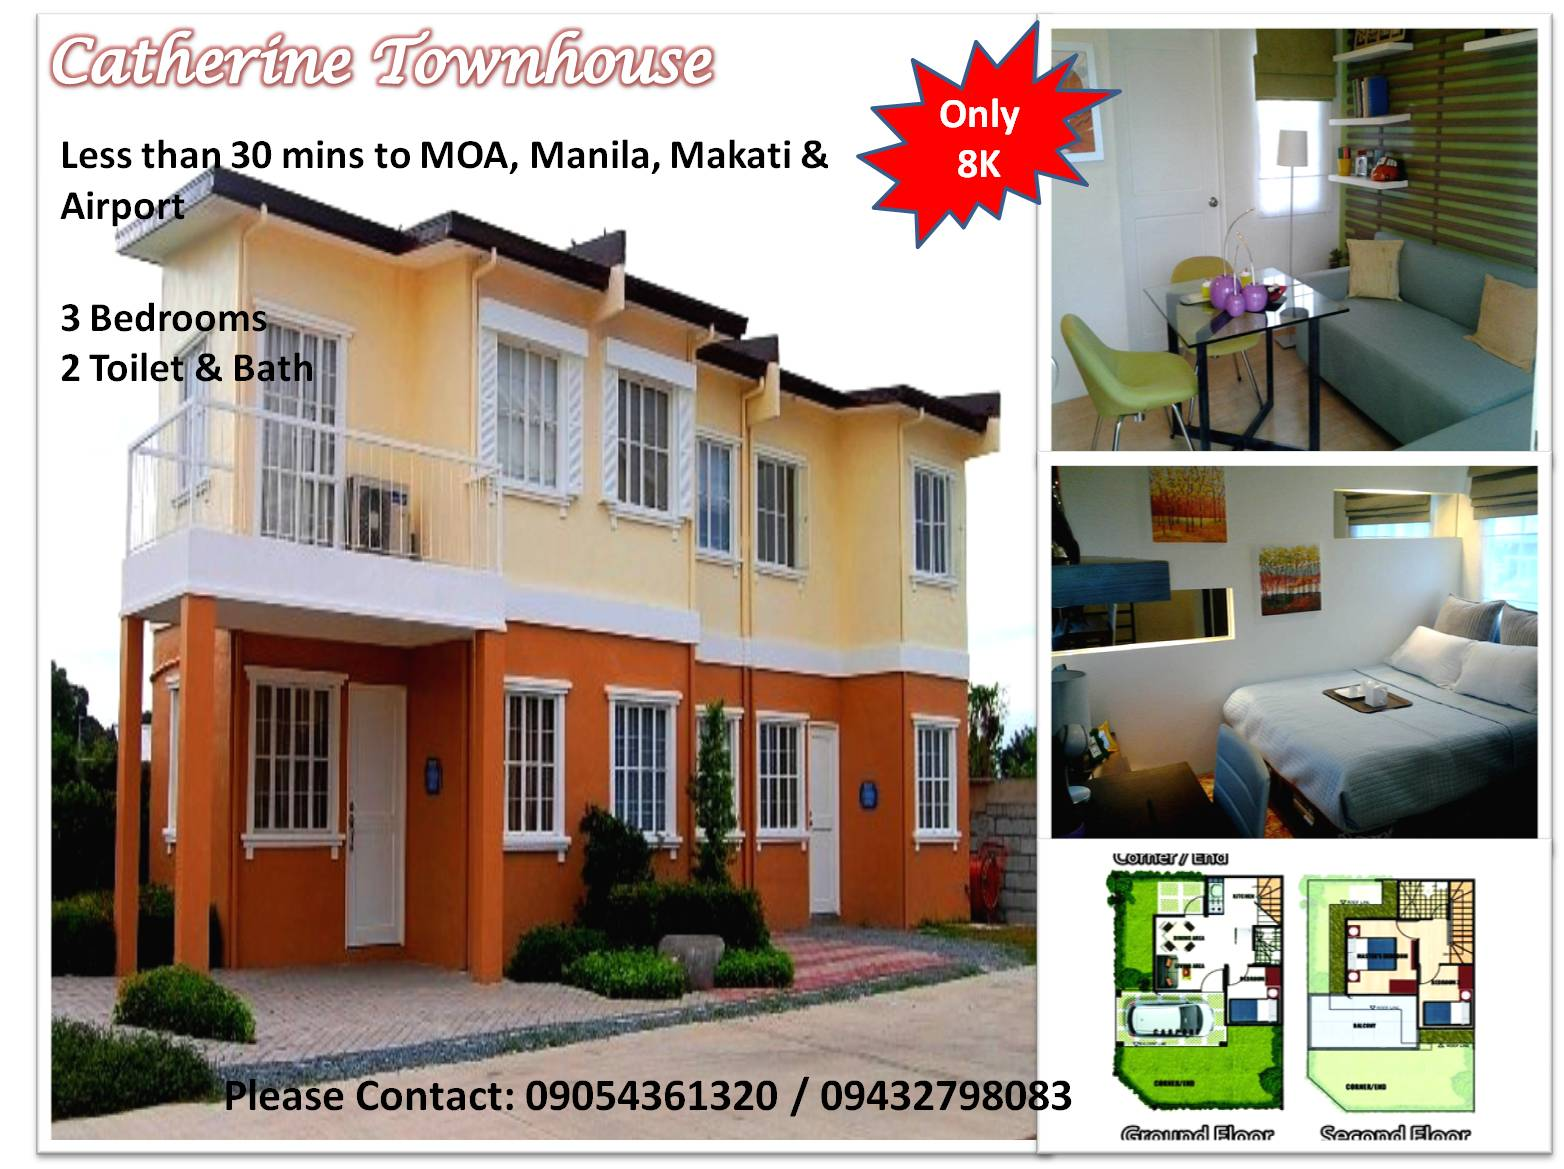 Affordable House & Lot for Sale Catherine Townhouse 3 bedrooms,  T&B near Mall of Asia & Airport